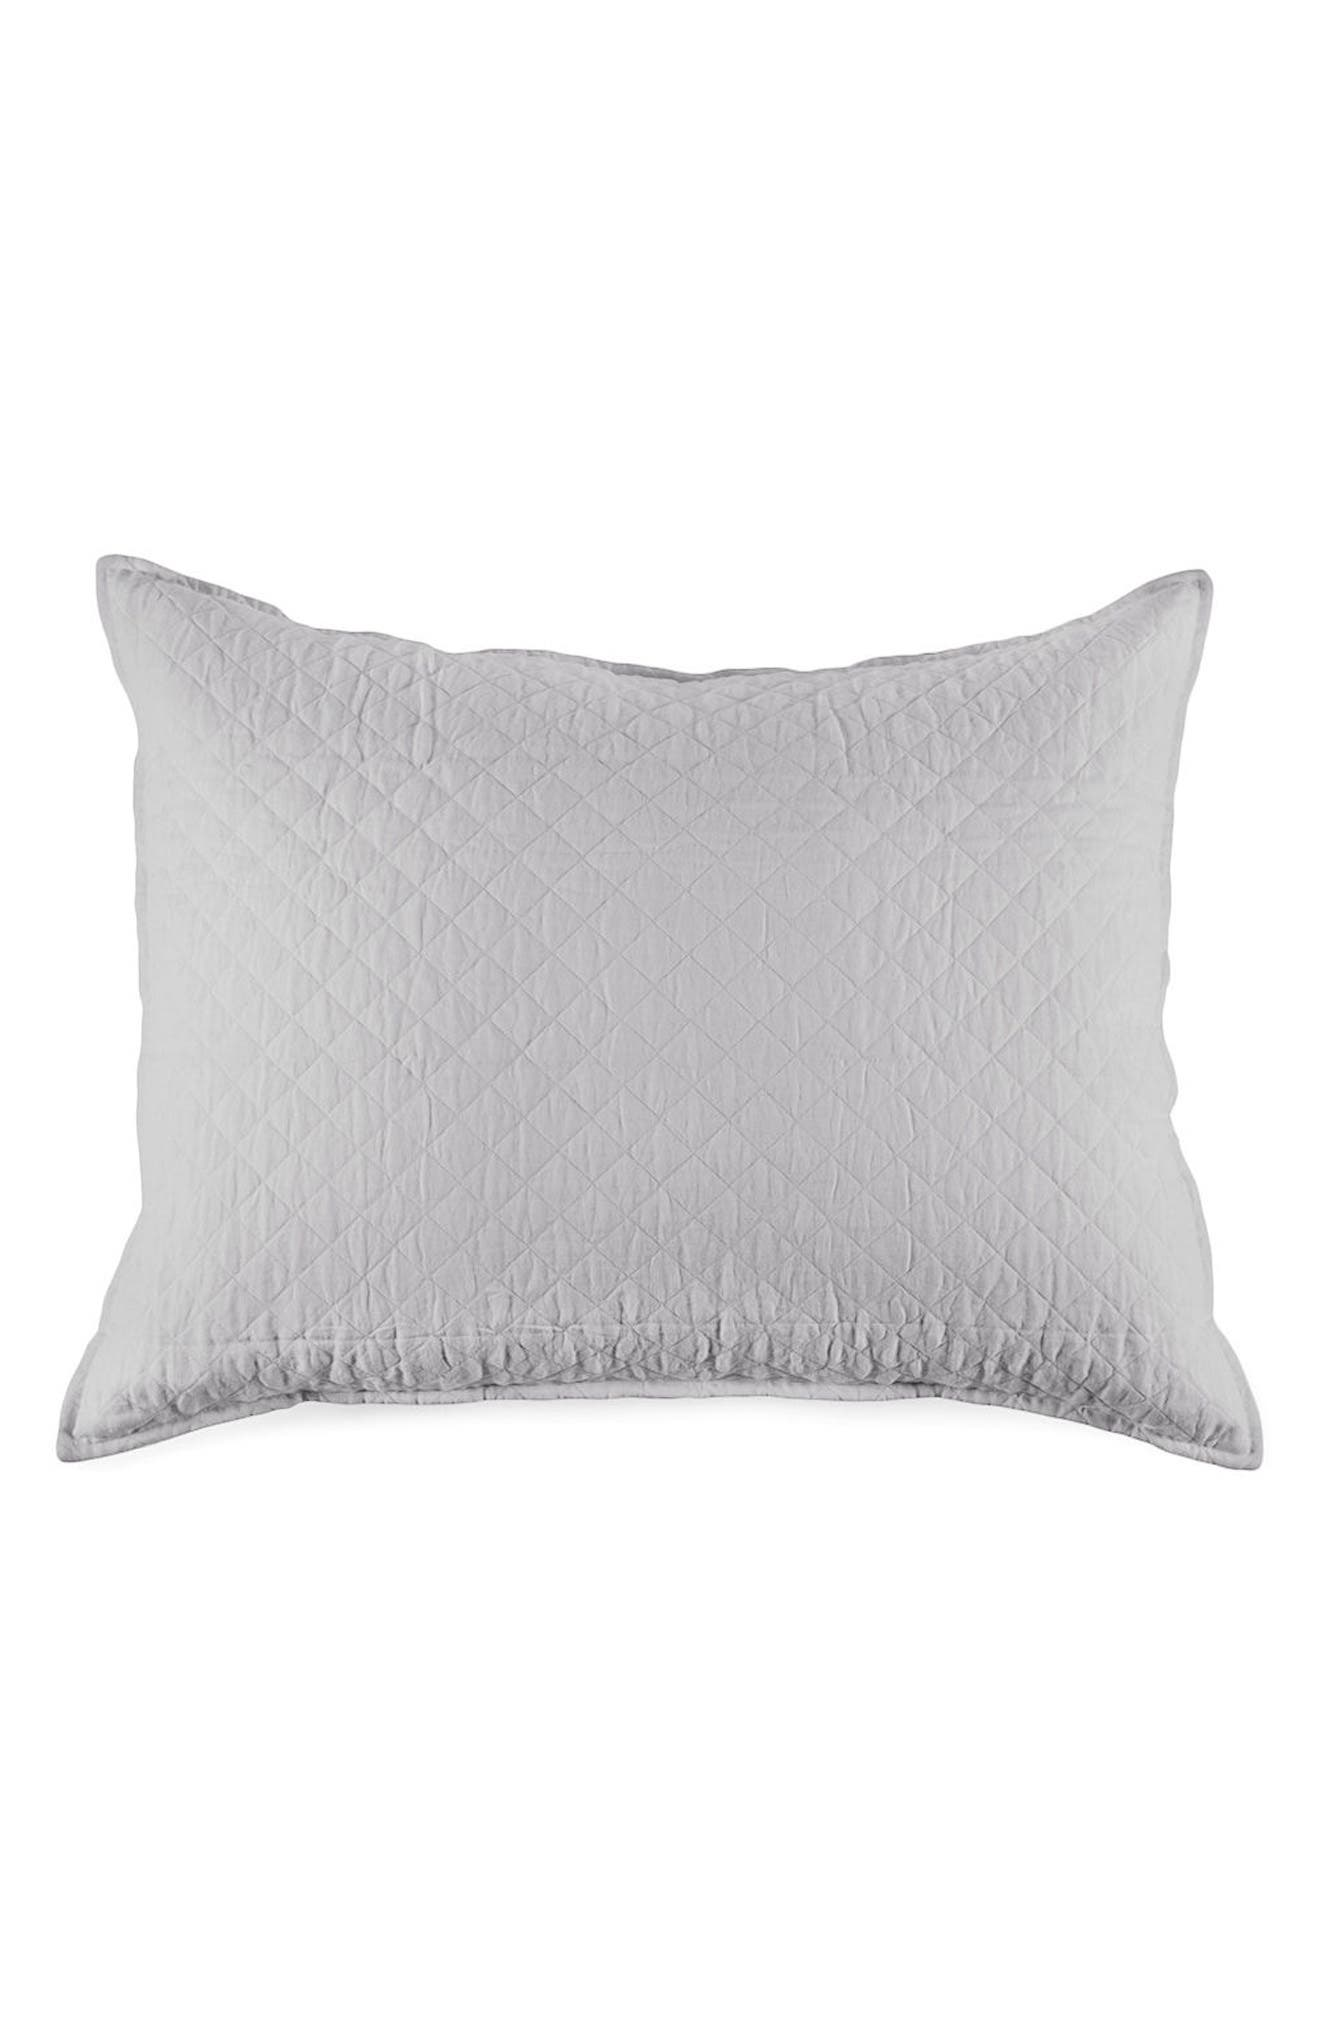 Pom Pom at Home Hampton Big Accent Pillow